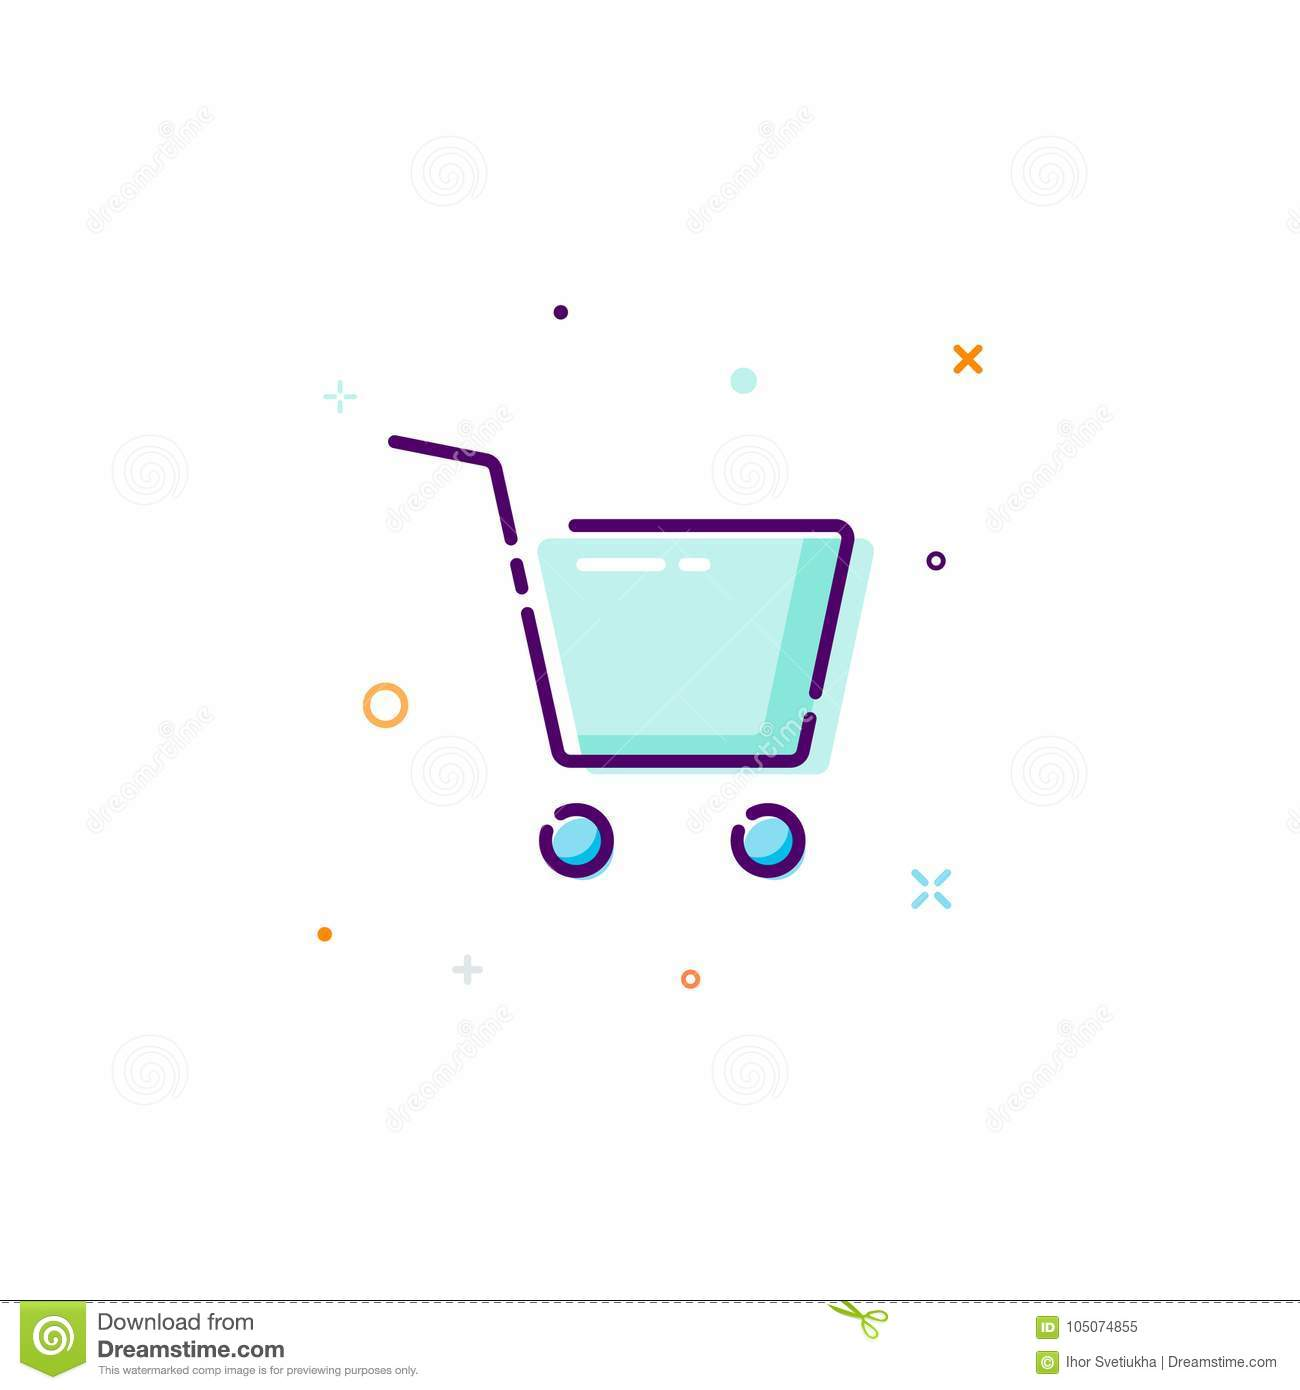 Concept cart icon. Thin line flat design element. buy online concept. Vector illustration isolated on white background